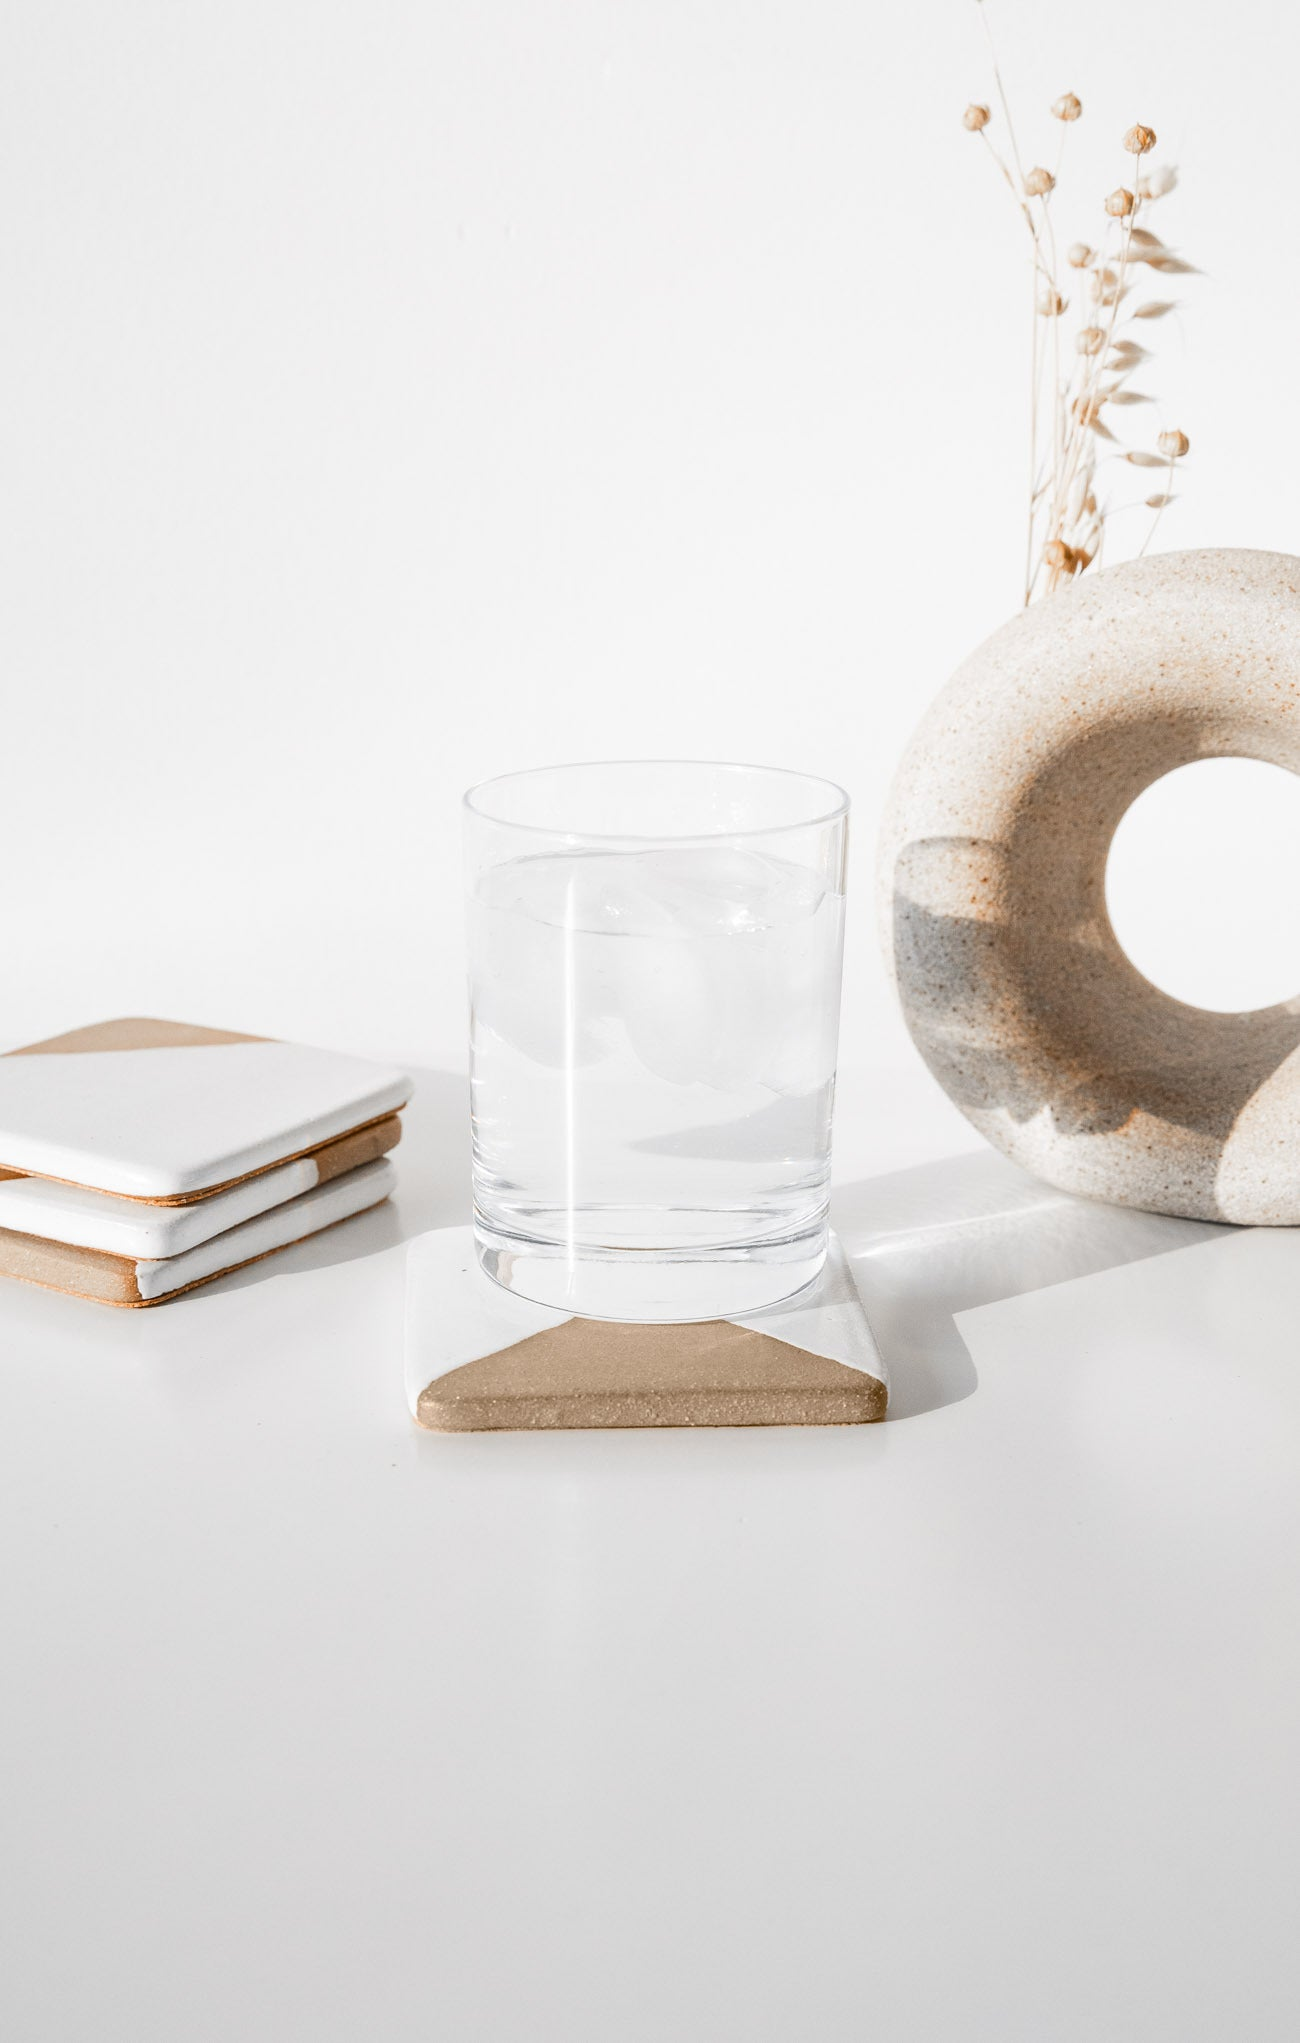 Ceramics Blocked Coasters (Set of 4) By The Hive Ceramics Multi